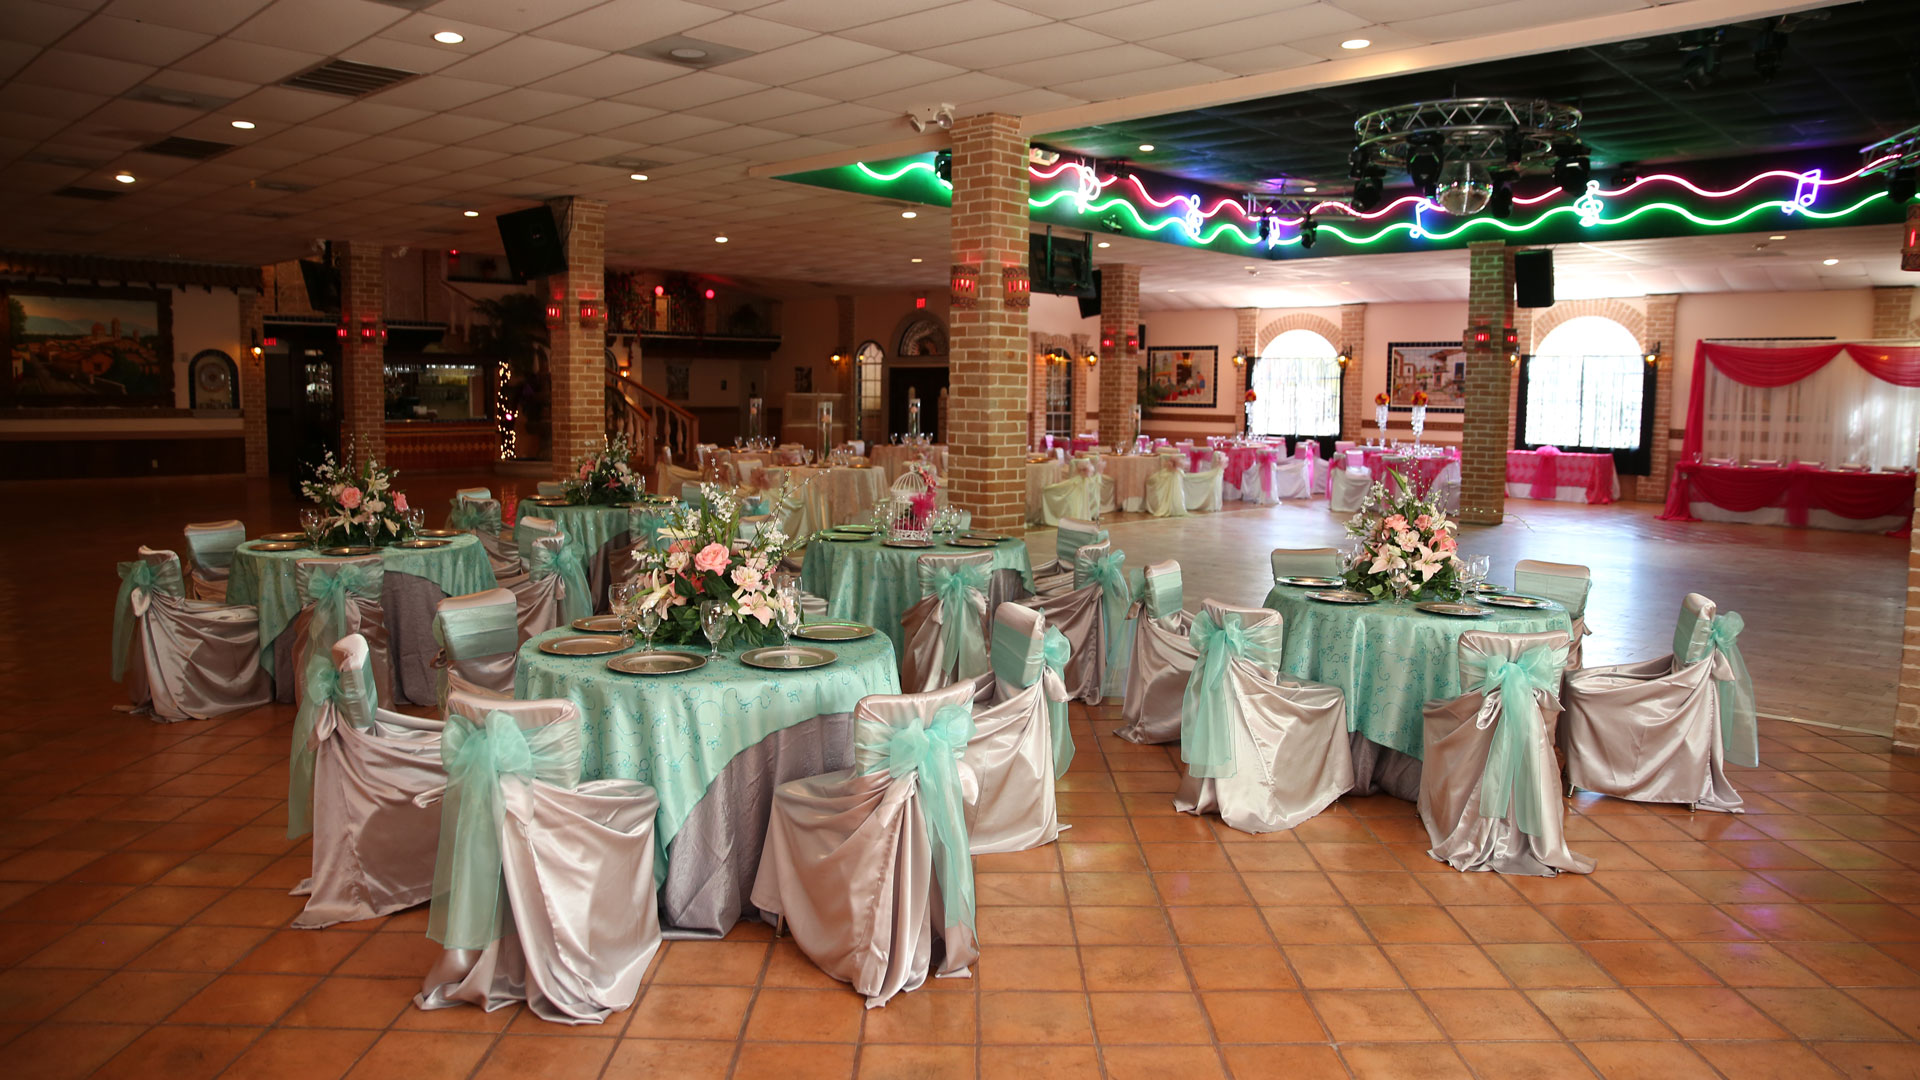 A luxury banquet hall